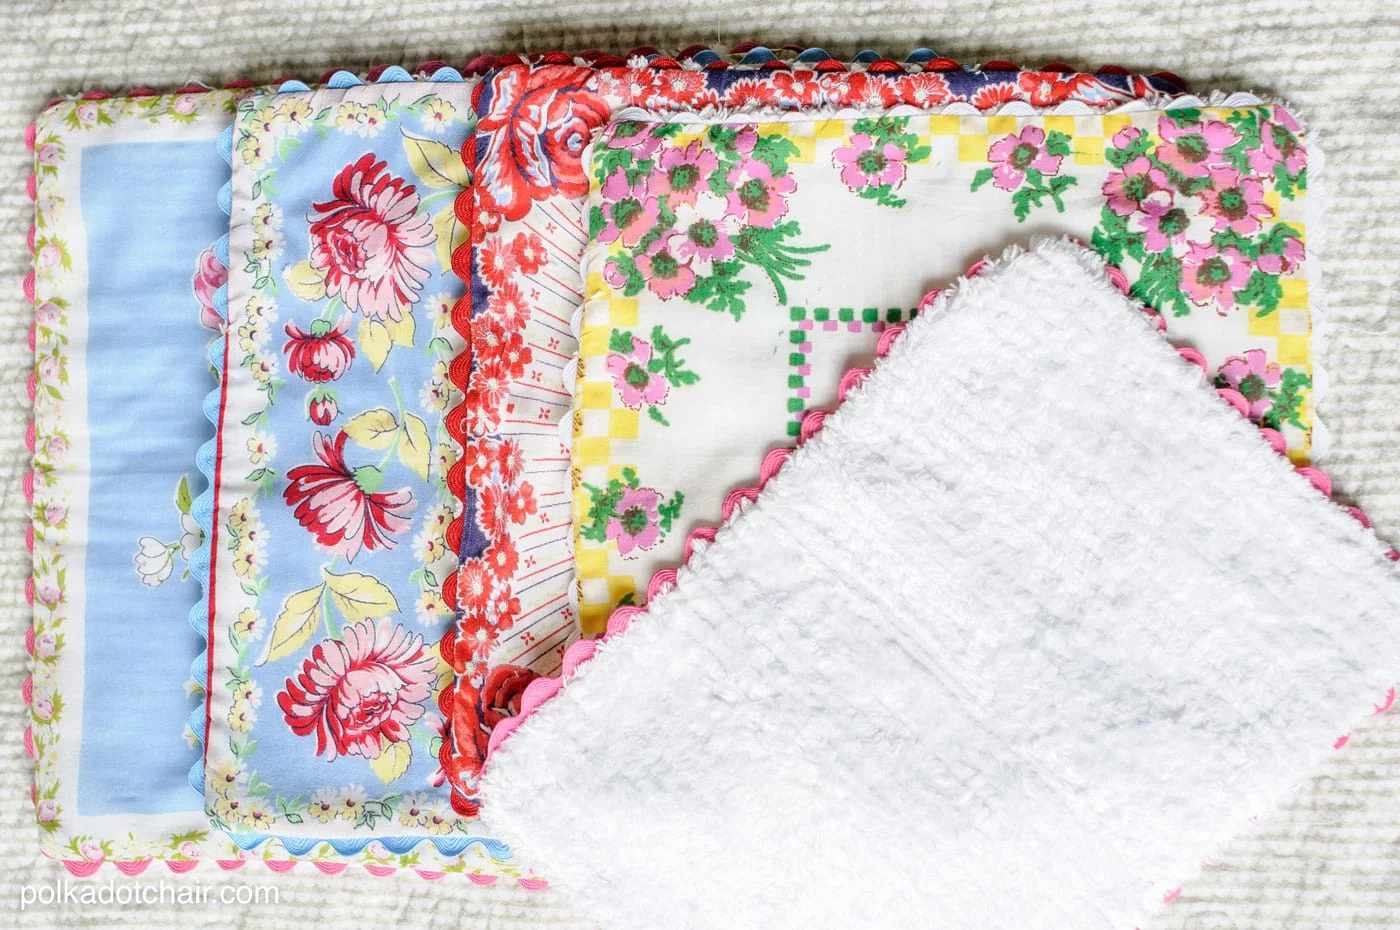 Burp cloths made from colorful handkerchiefs